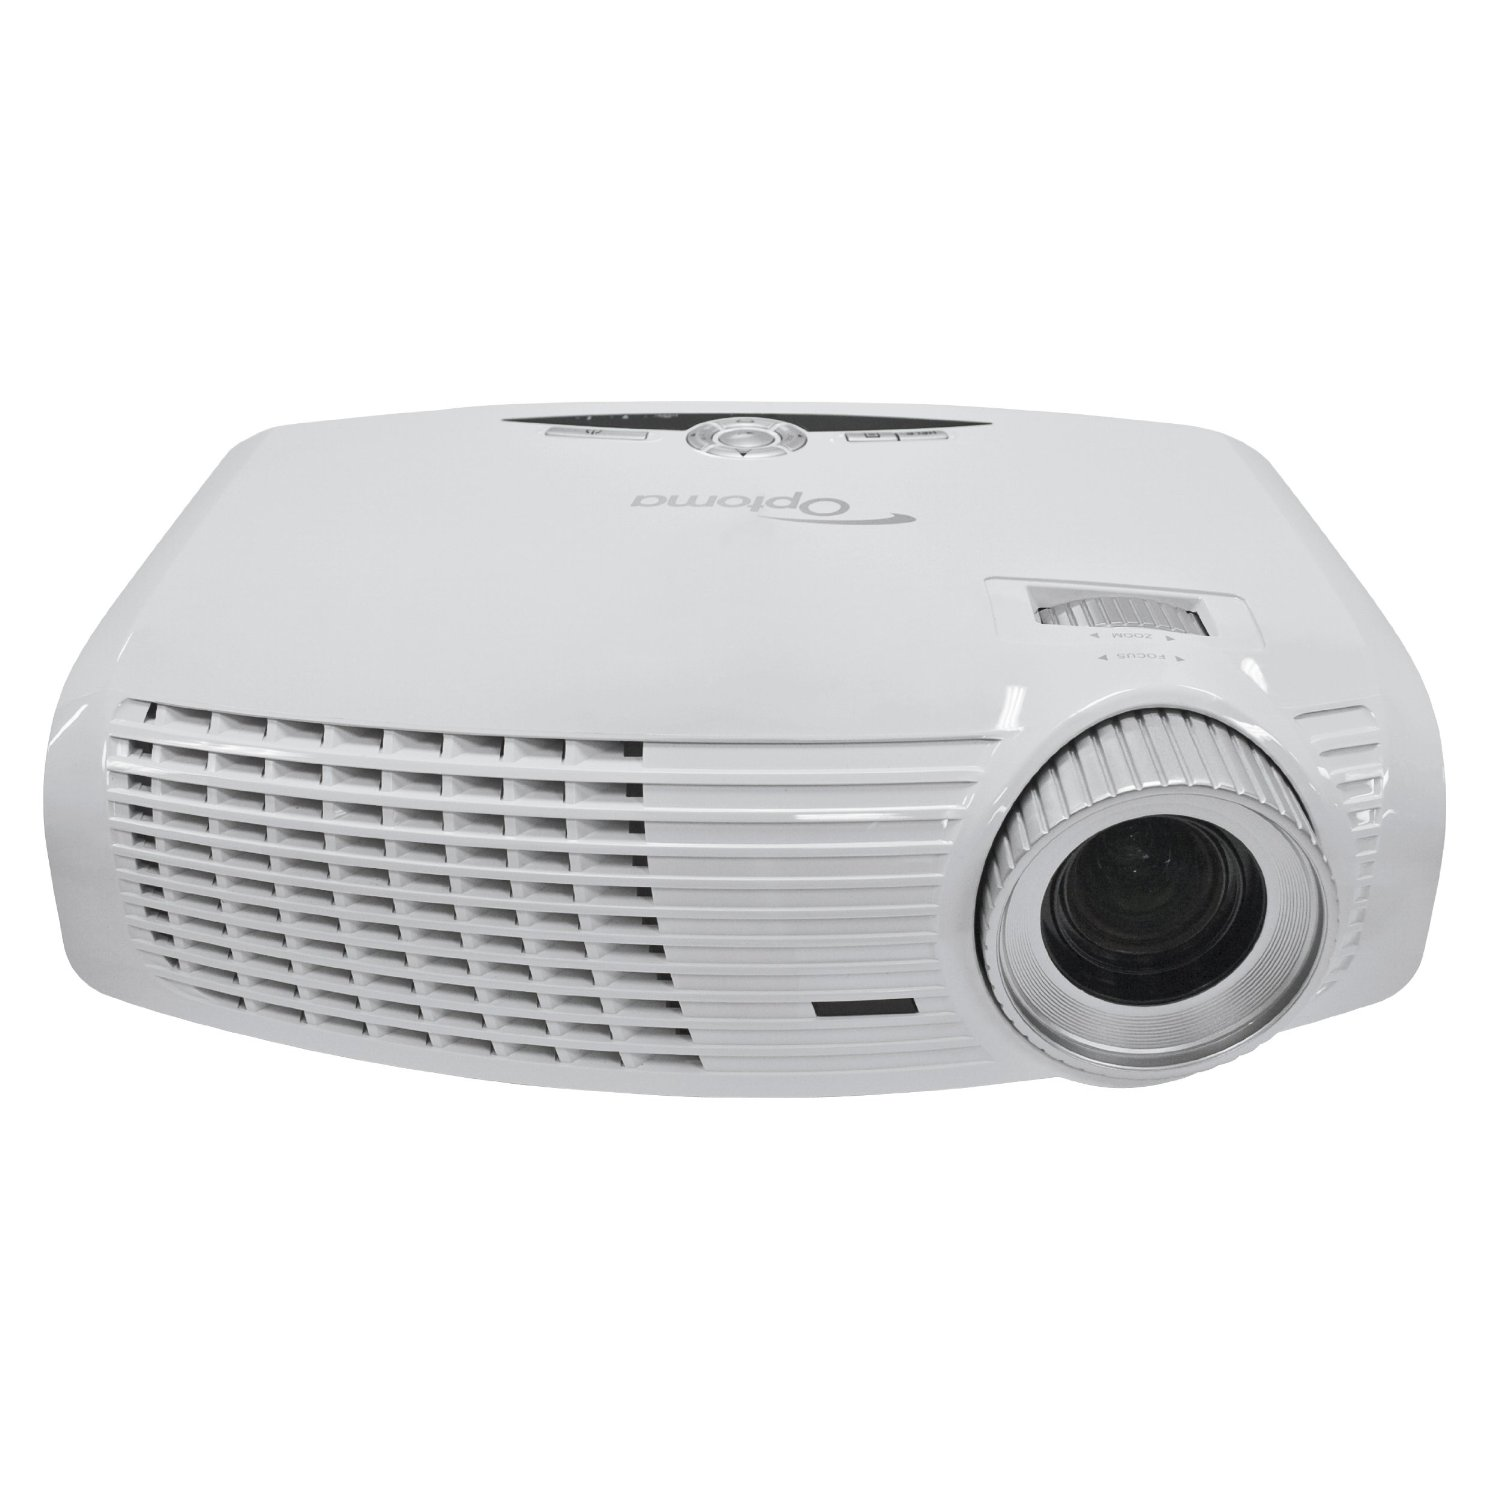 Mini wall best hd projector 1080p reviews optoma hd20 for Hd projector reviews